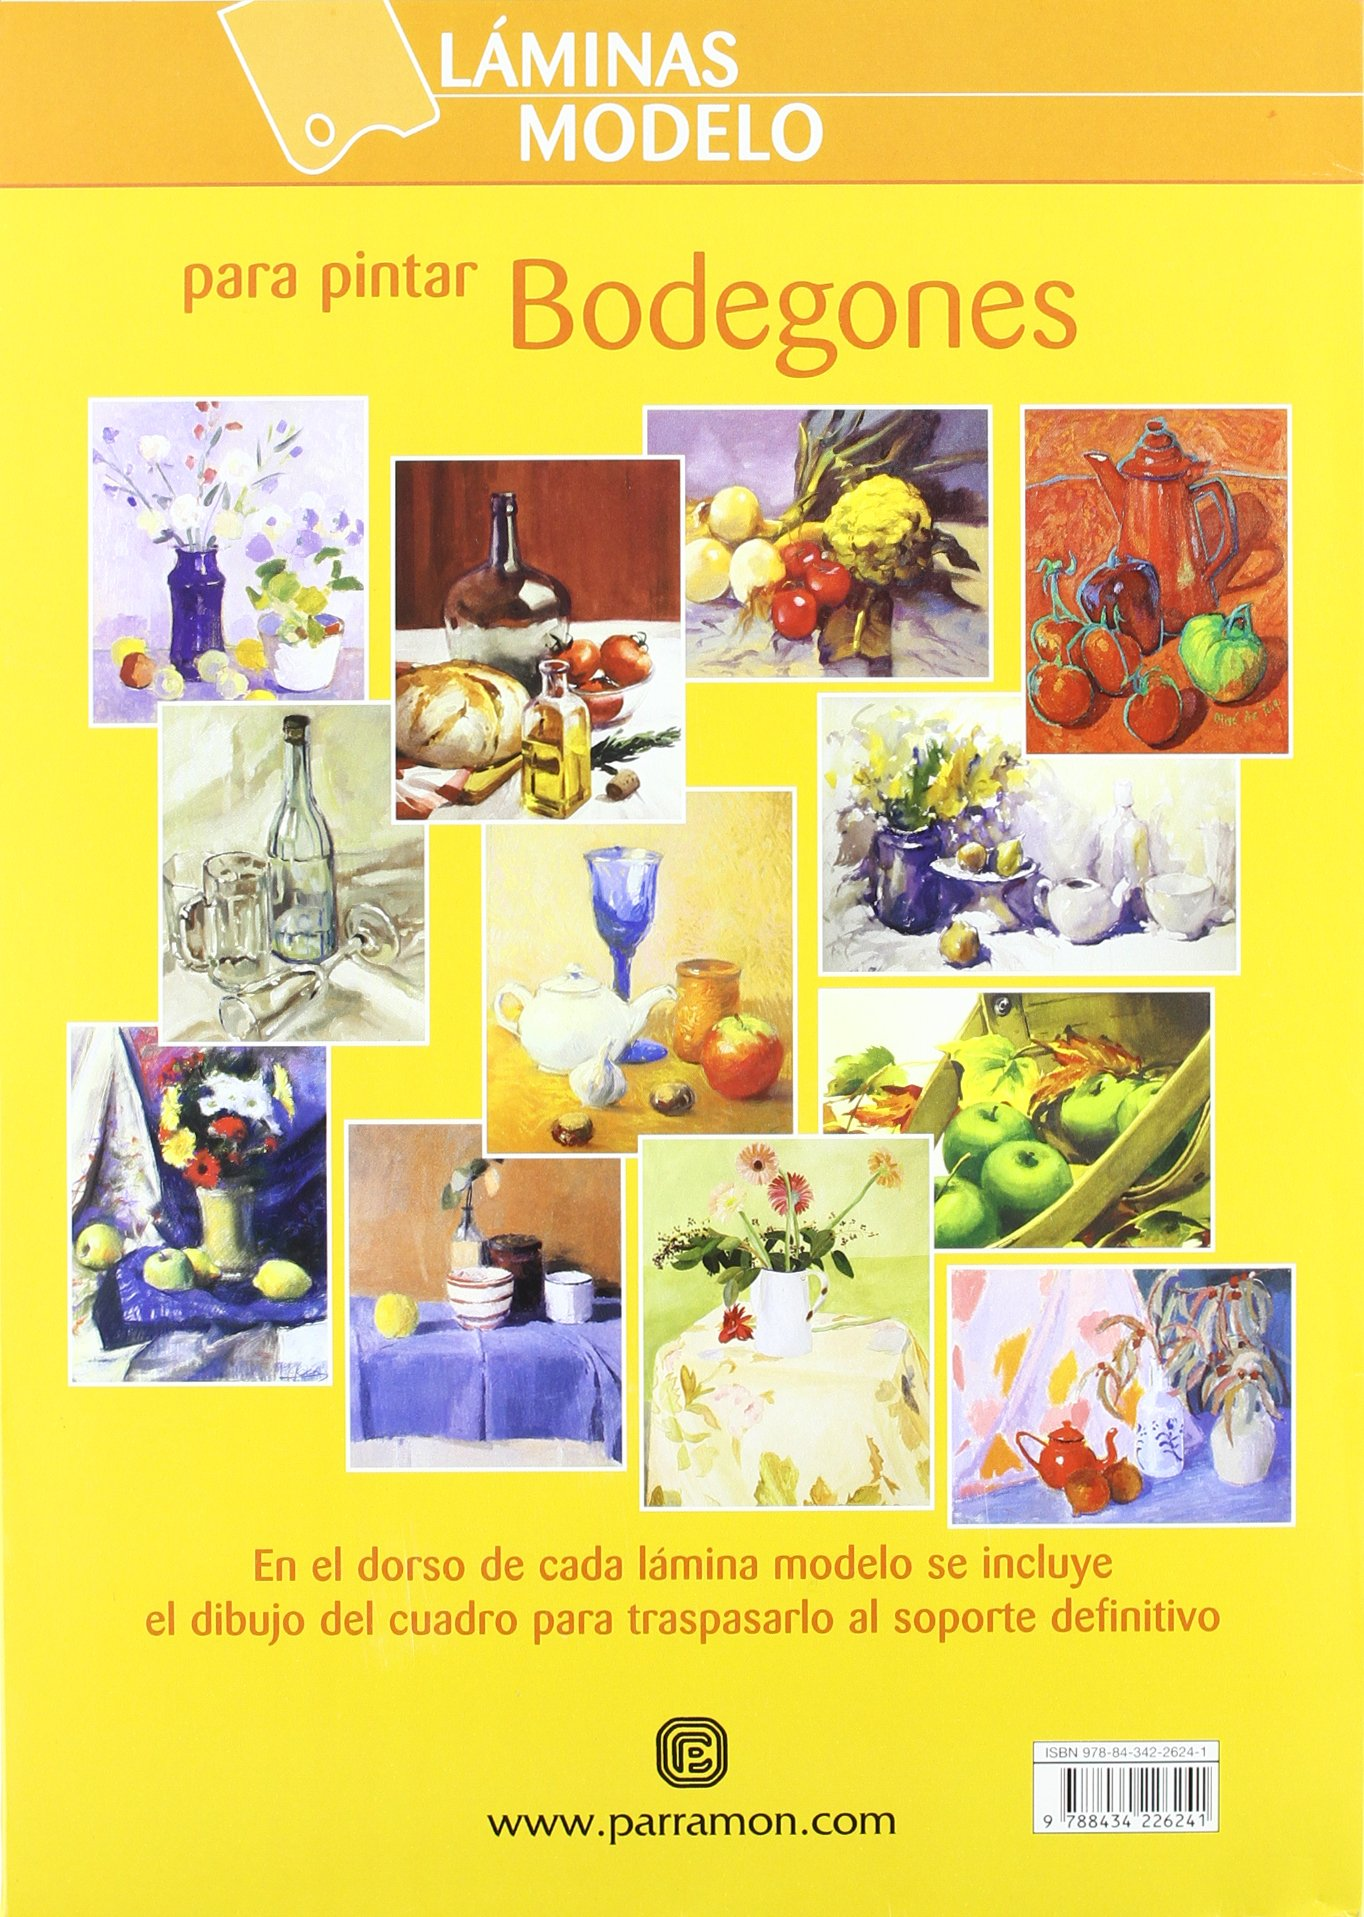 Bodegones (Spanish Edition) by Parramon